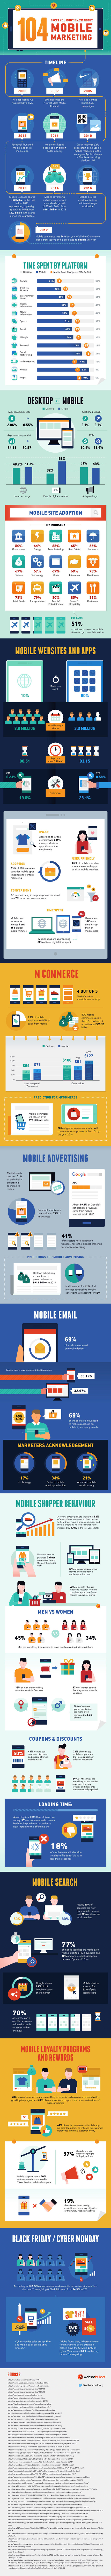 104 Mobile Marketing Facts [Infographic]